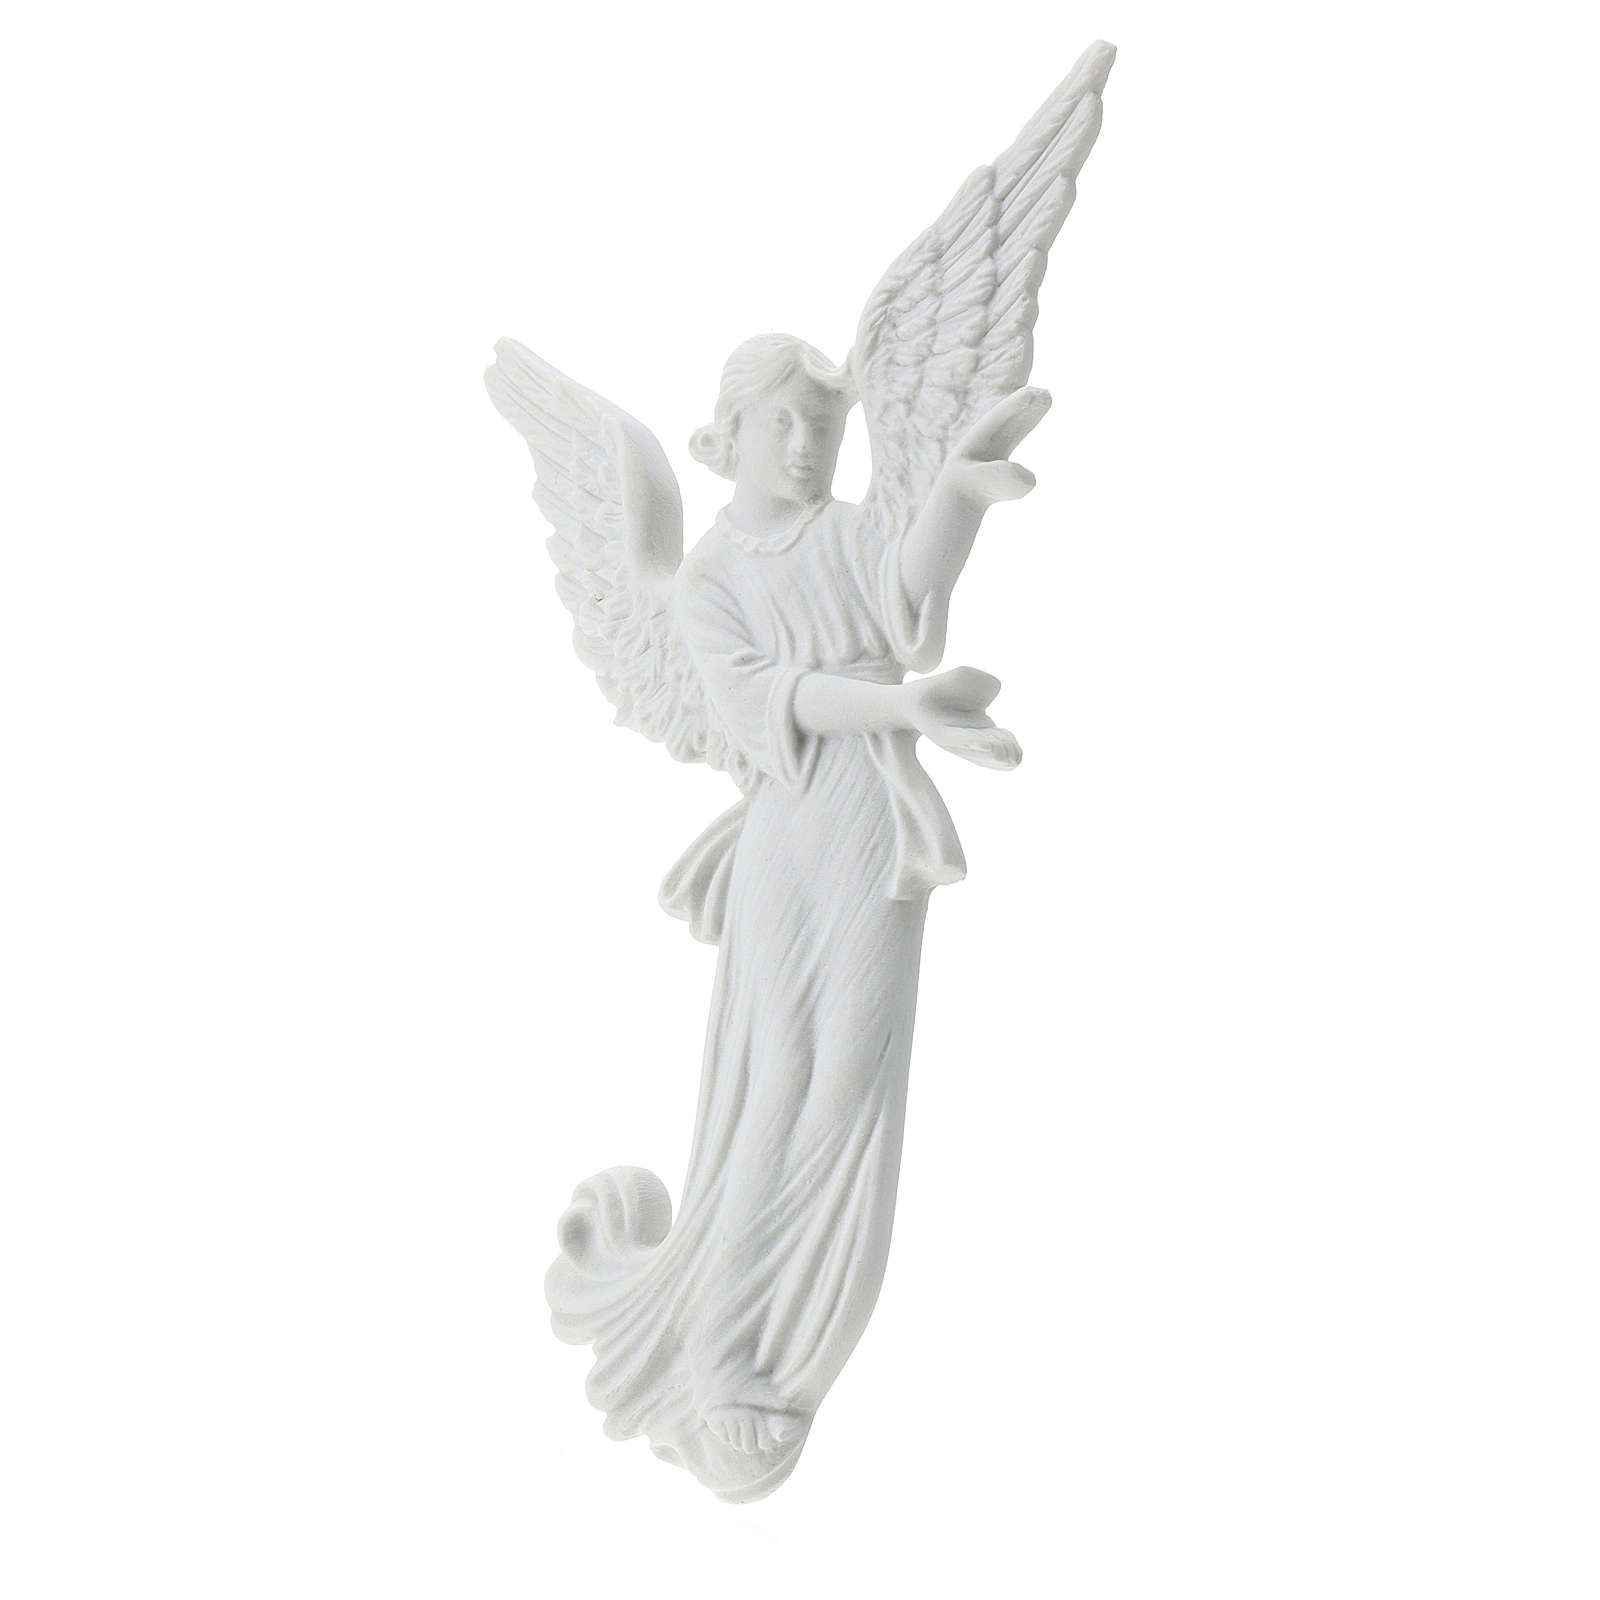 Angel bas-relief made of reconstituted carrara marble, 26 cm 3